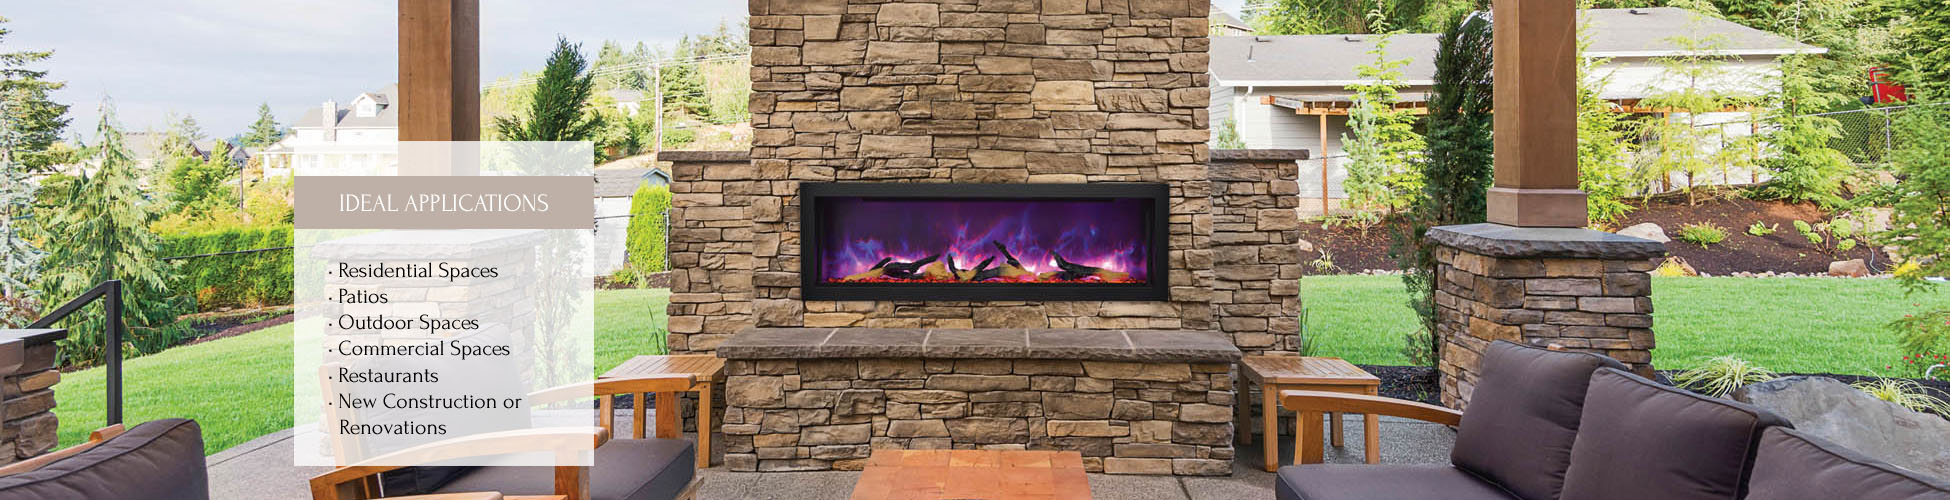 Sierra Flame indoor or outdoor elecltric fireplace